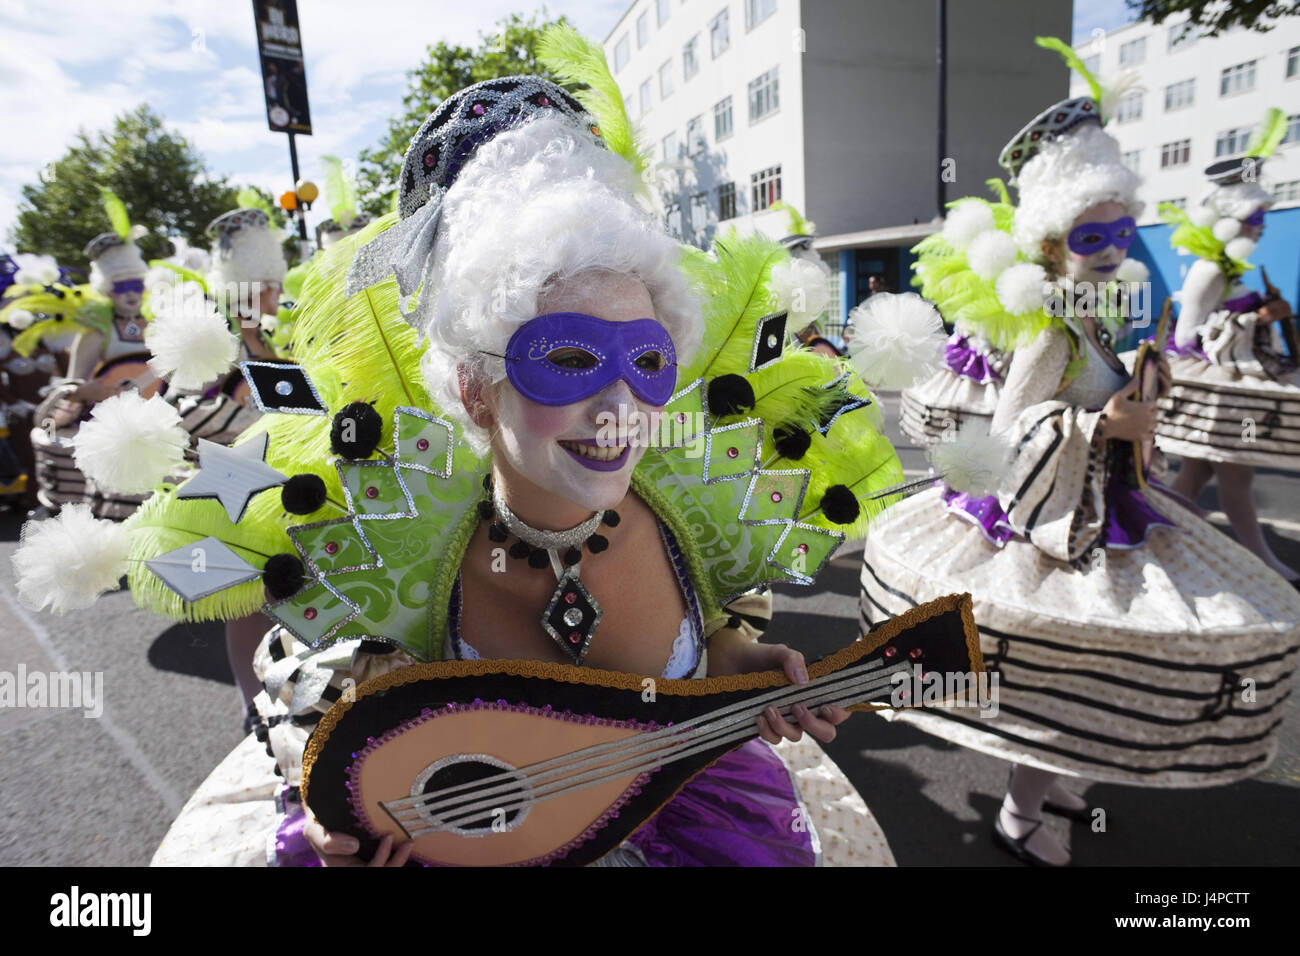 Great Britain, England, London, Notting Hill, carnival, no model release, - Stock Image